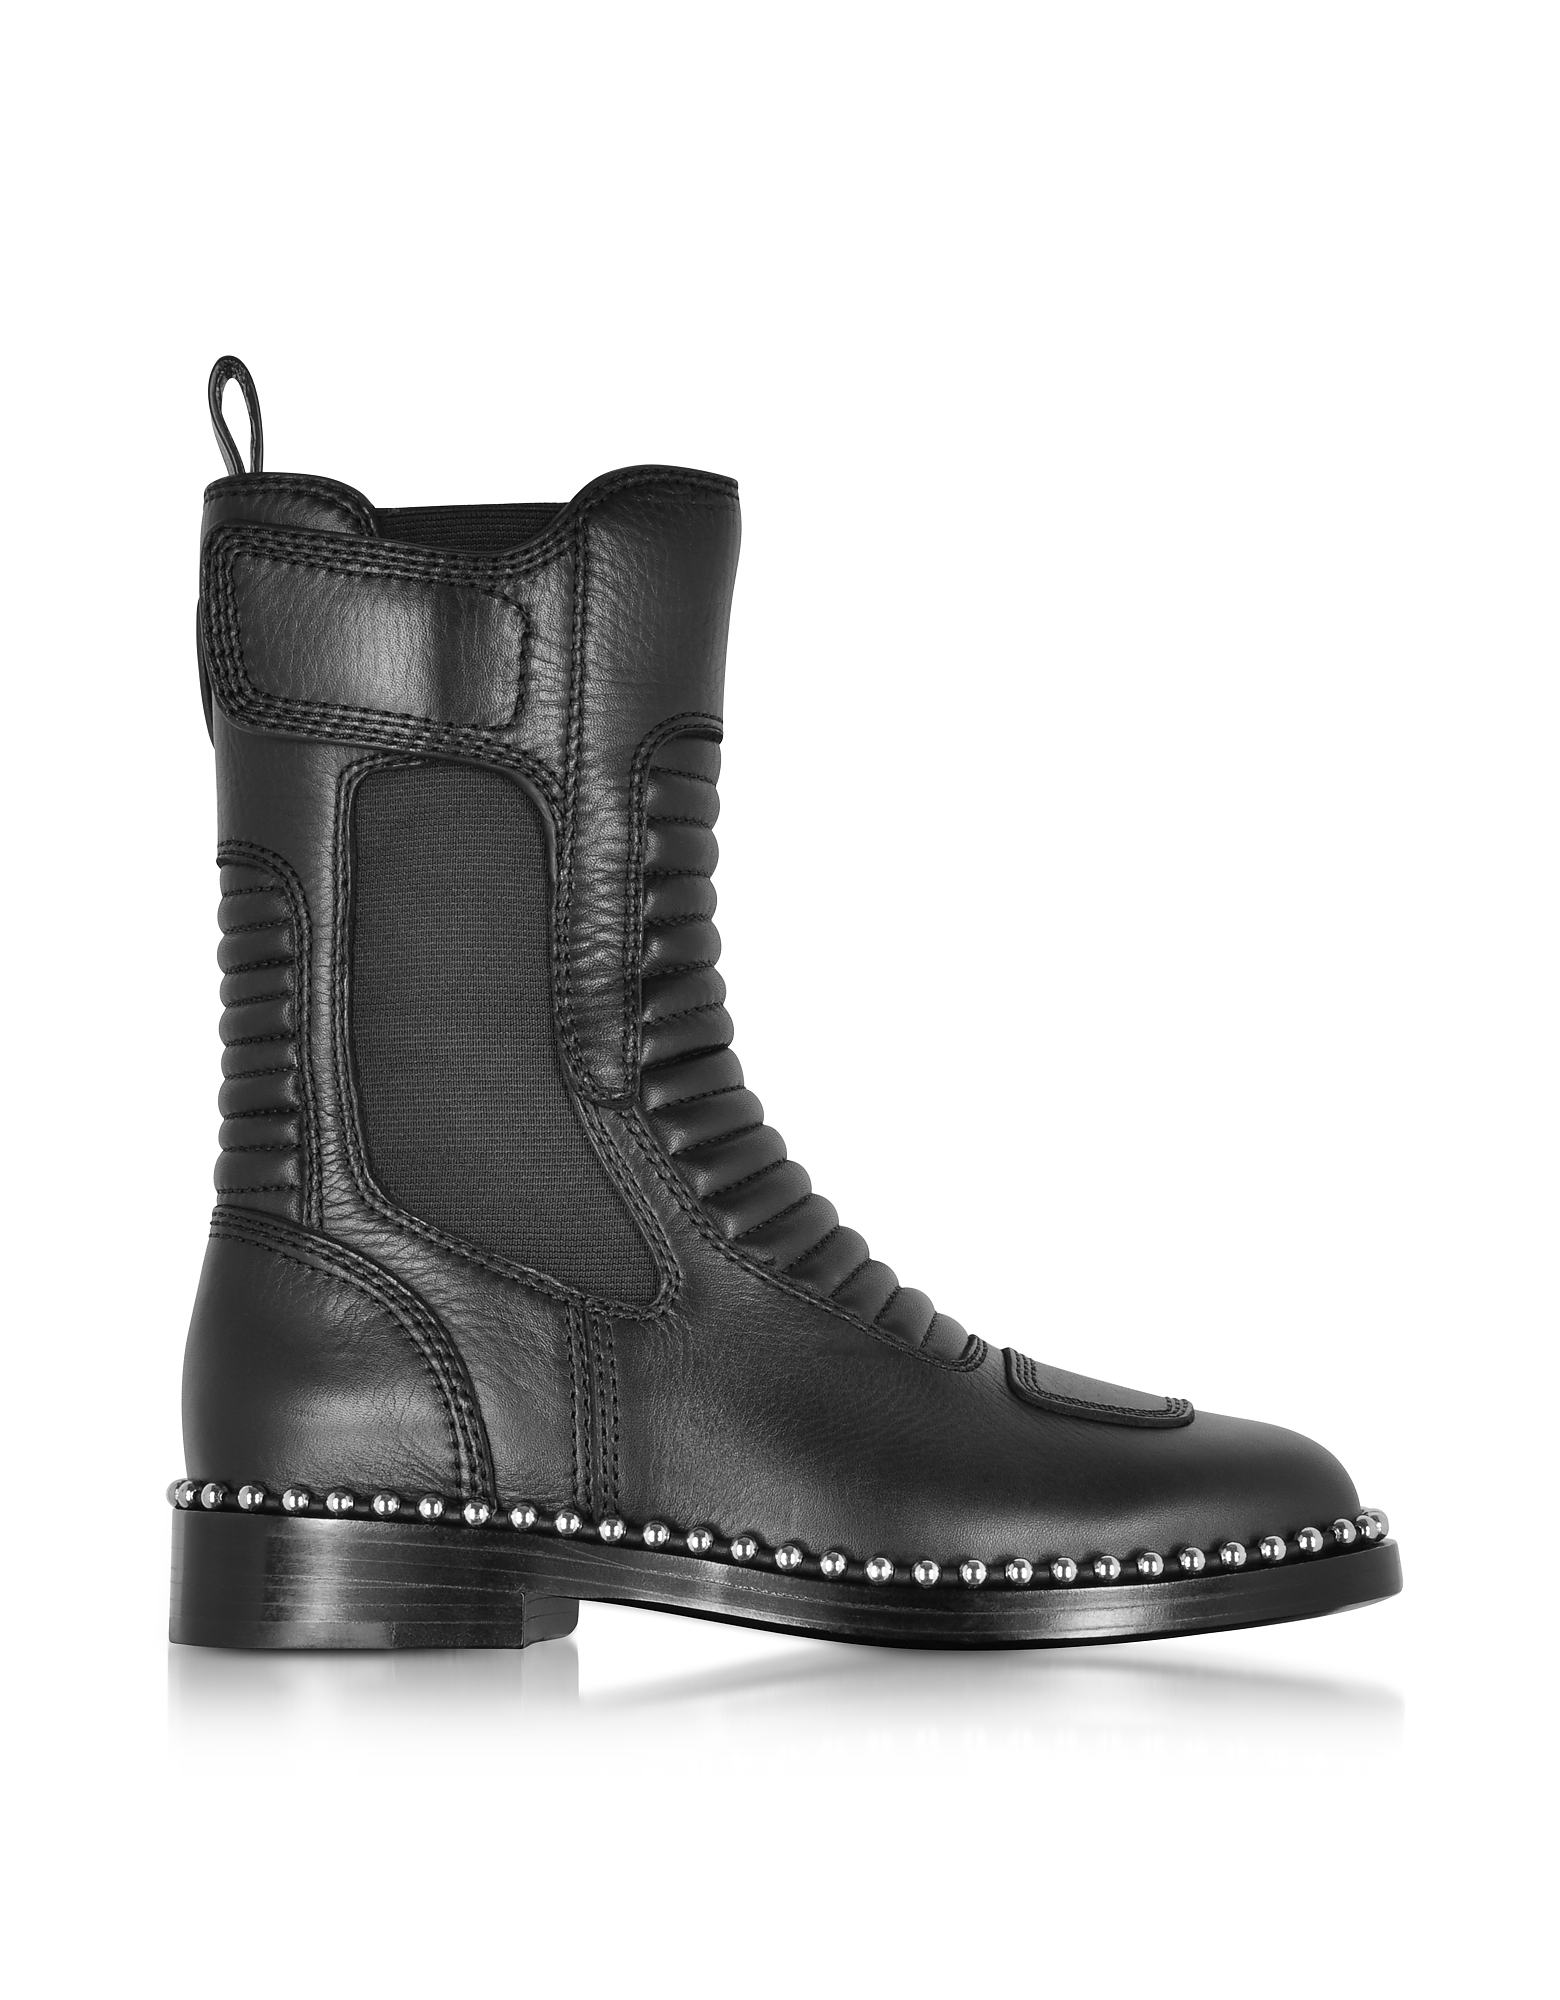 Alexander Wang Shoes, Mica Black Leather Boots